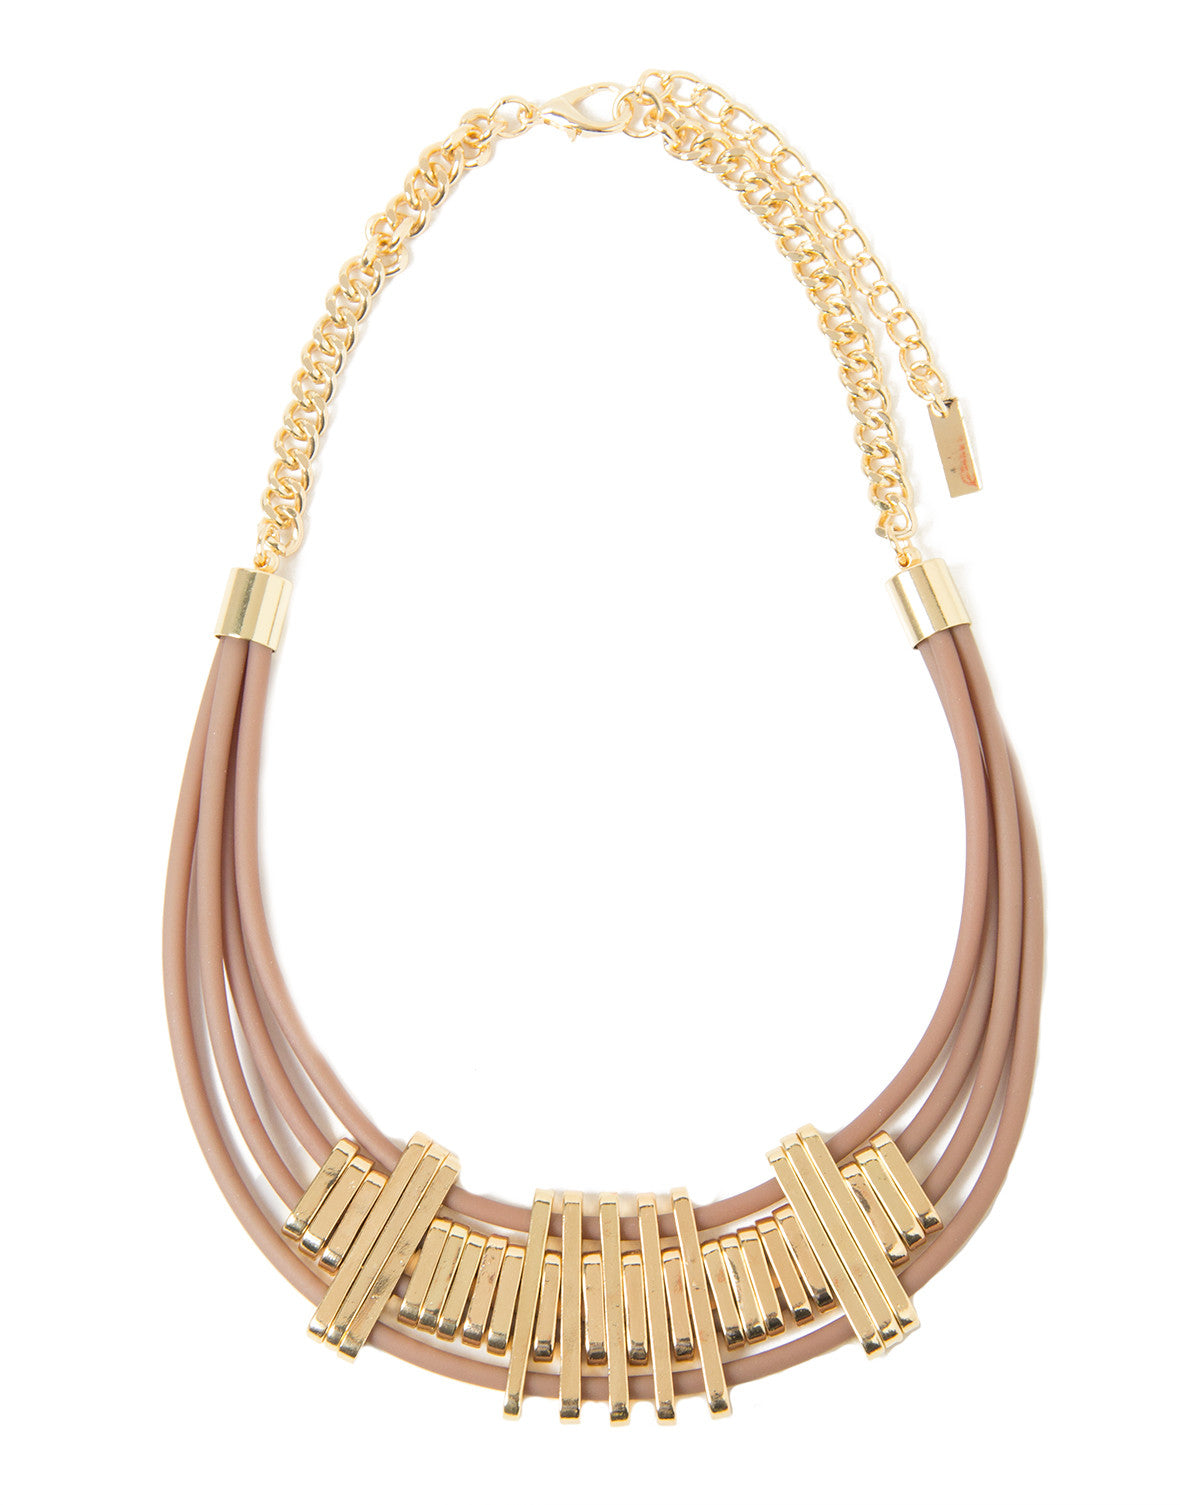 Jelly Tribal Necklace - Brown